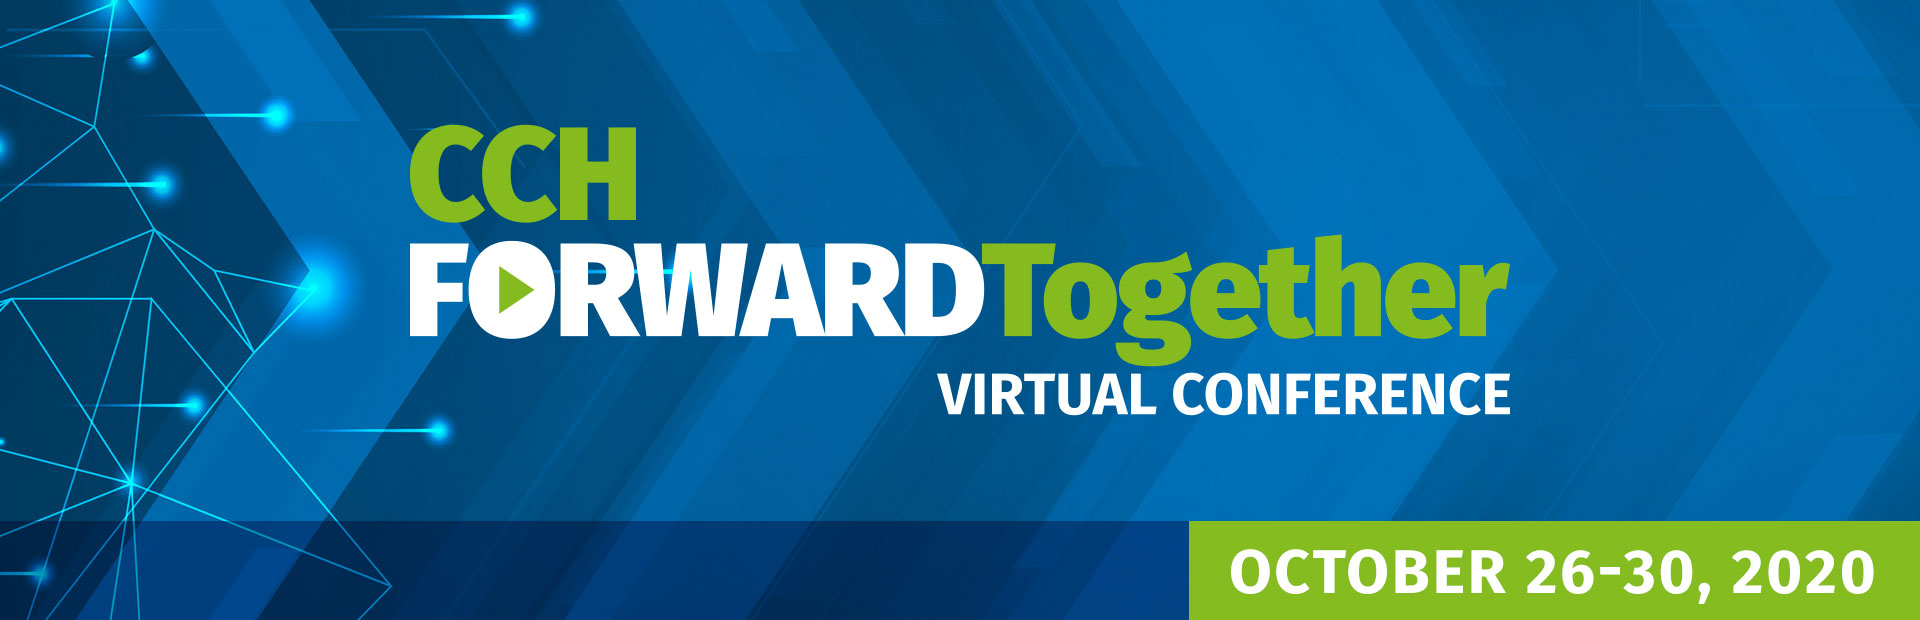 CCH Forward Together Virtual Conference 2020